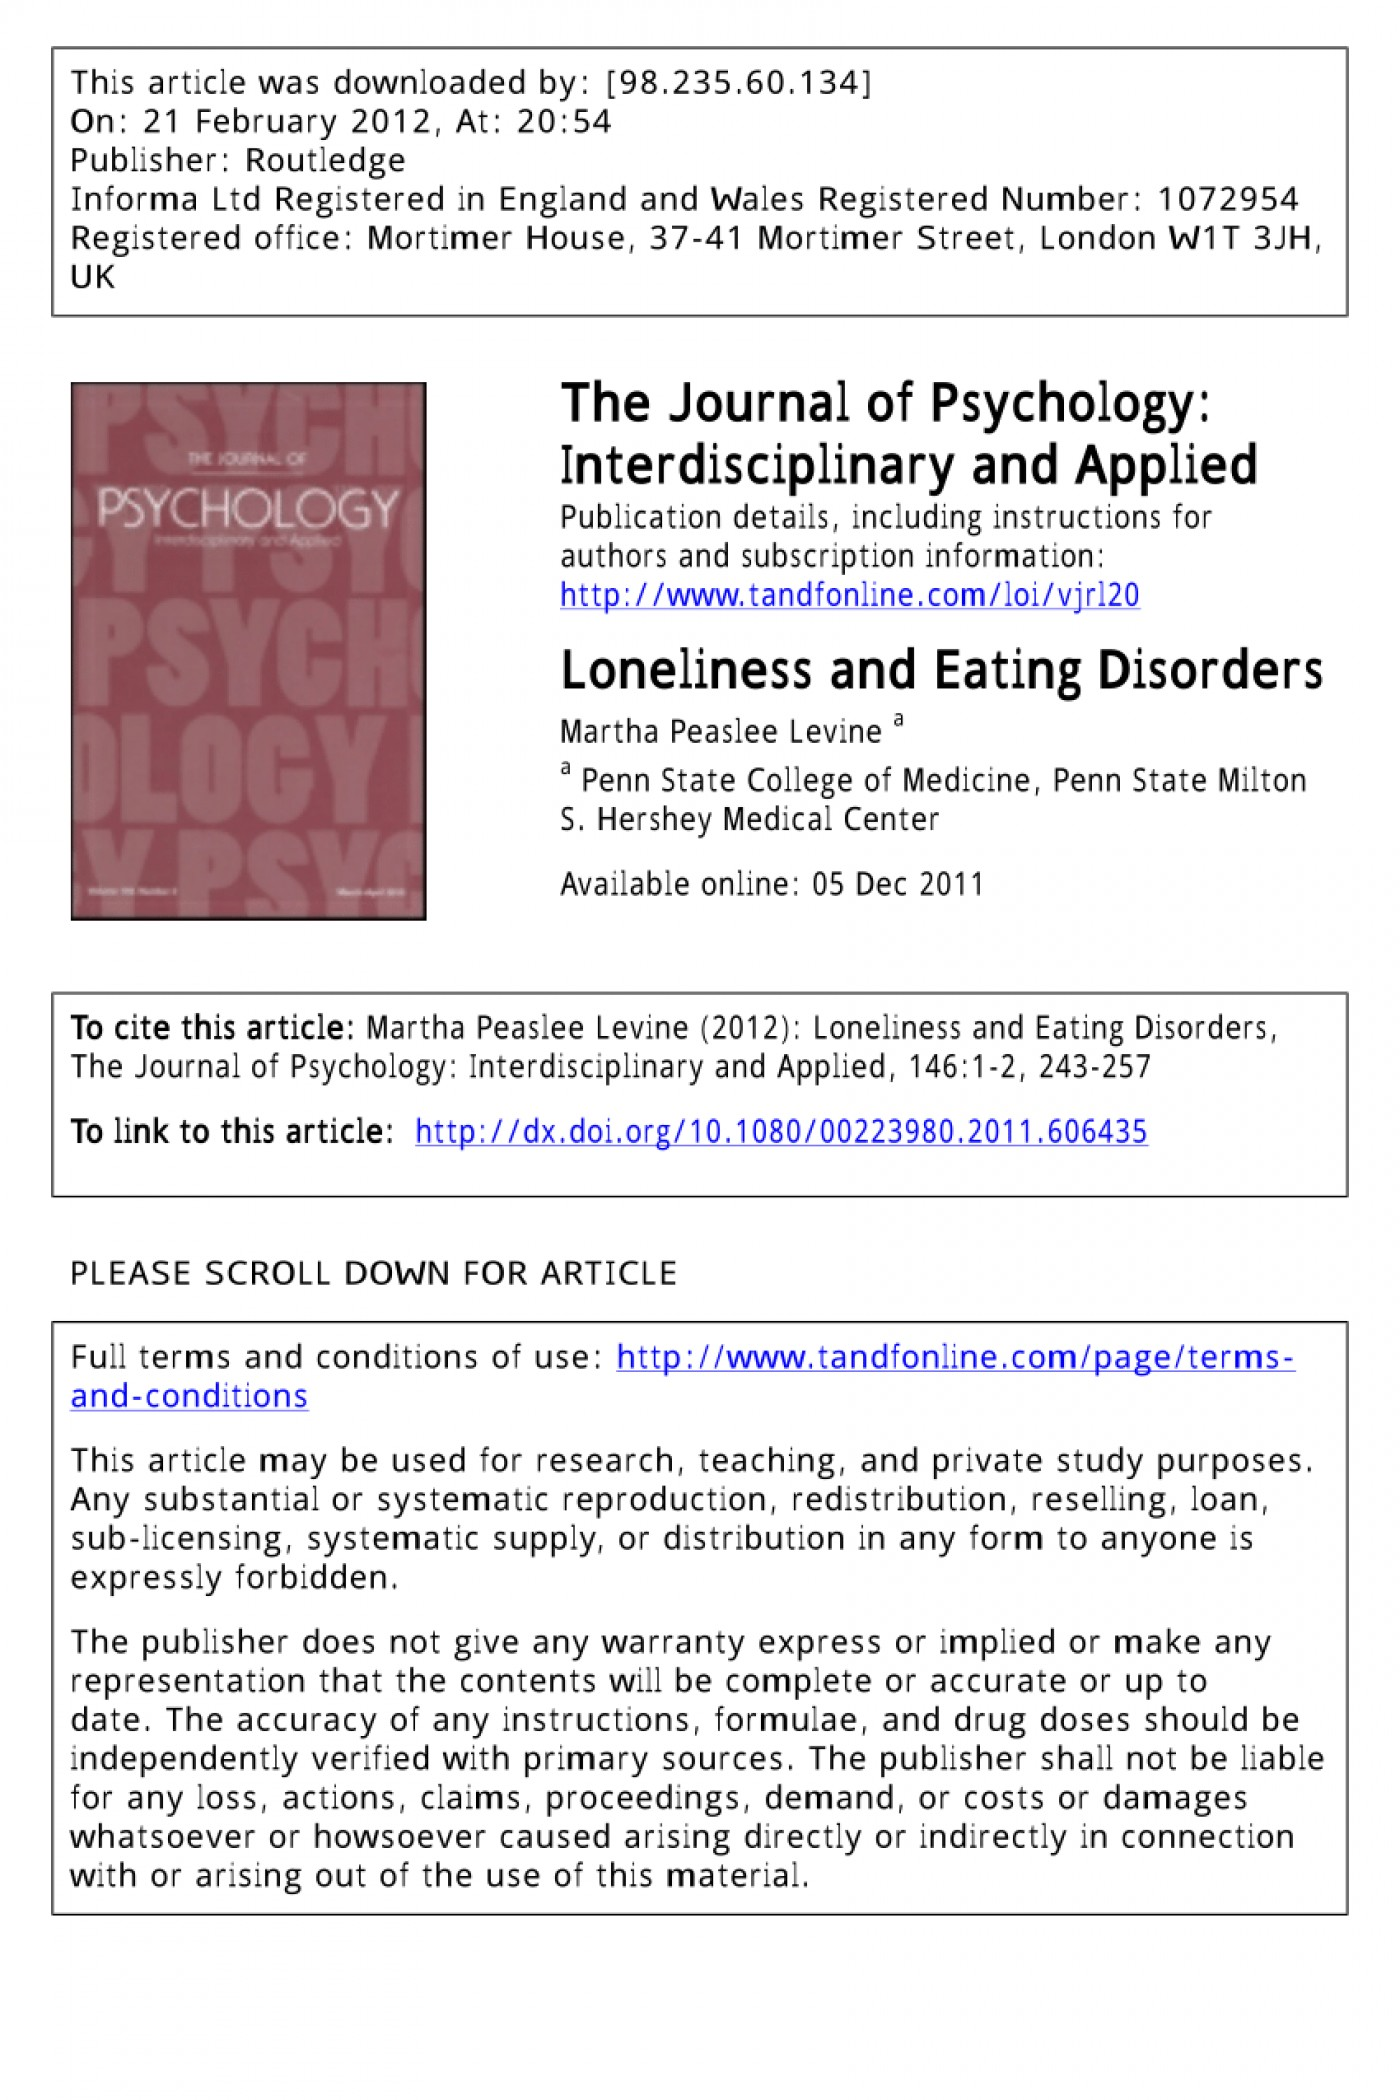 004 Research Paper Largepreview Psychological On Eating Imposing Disorders Psychology Topics 1400